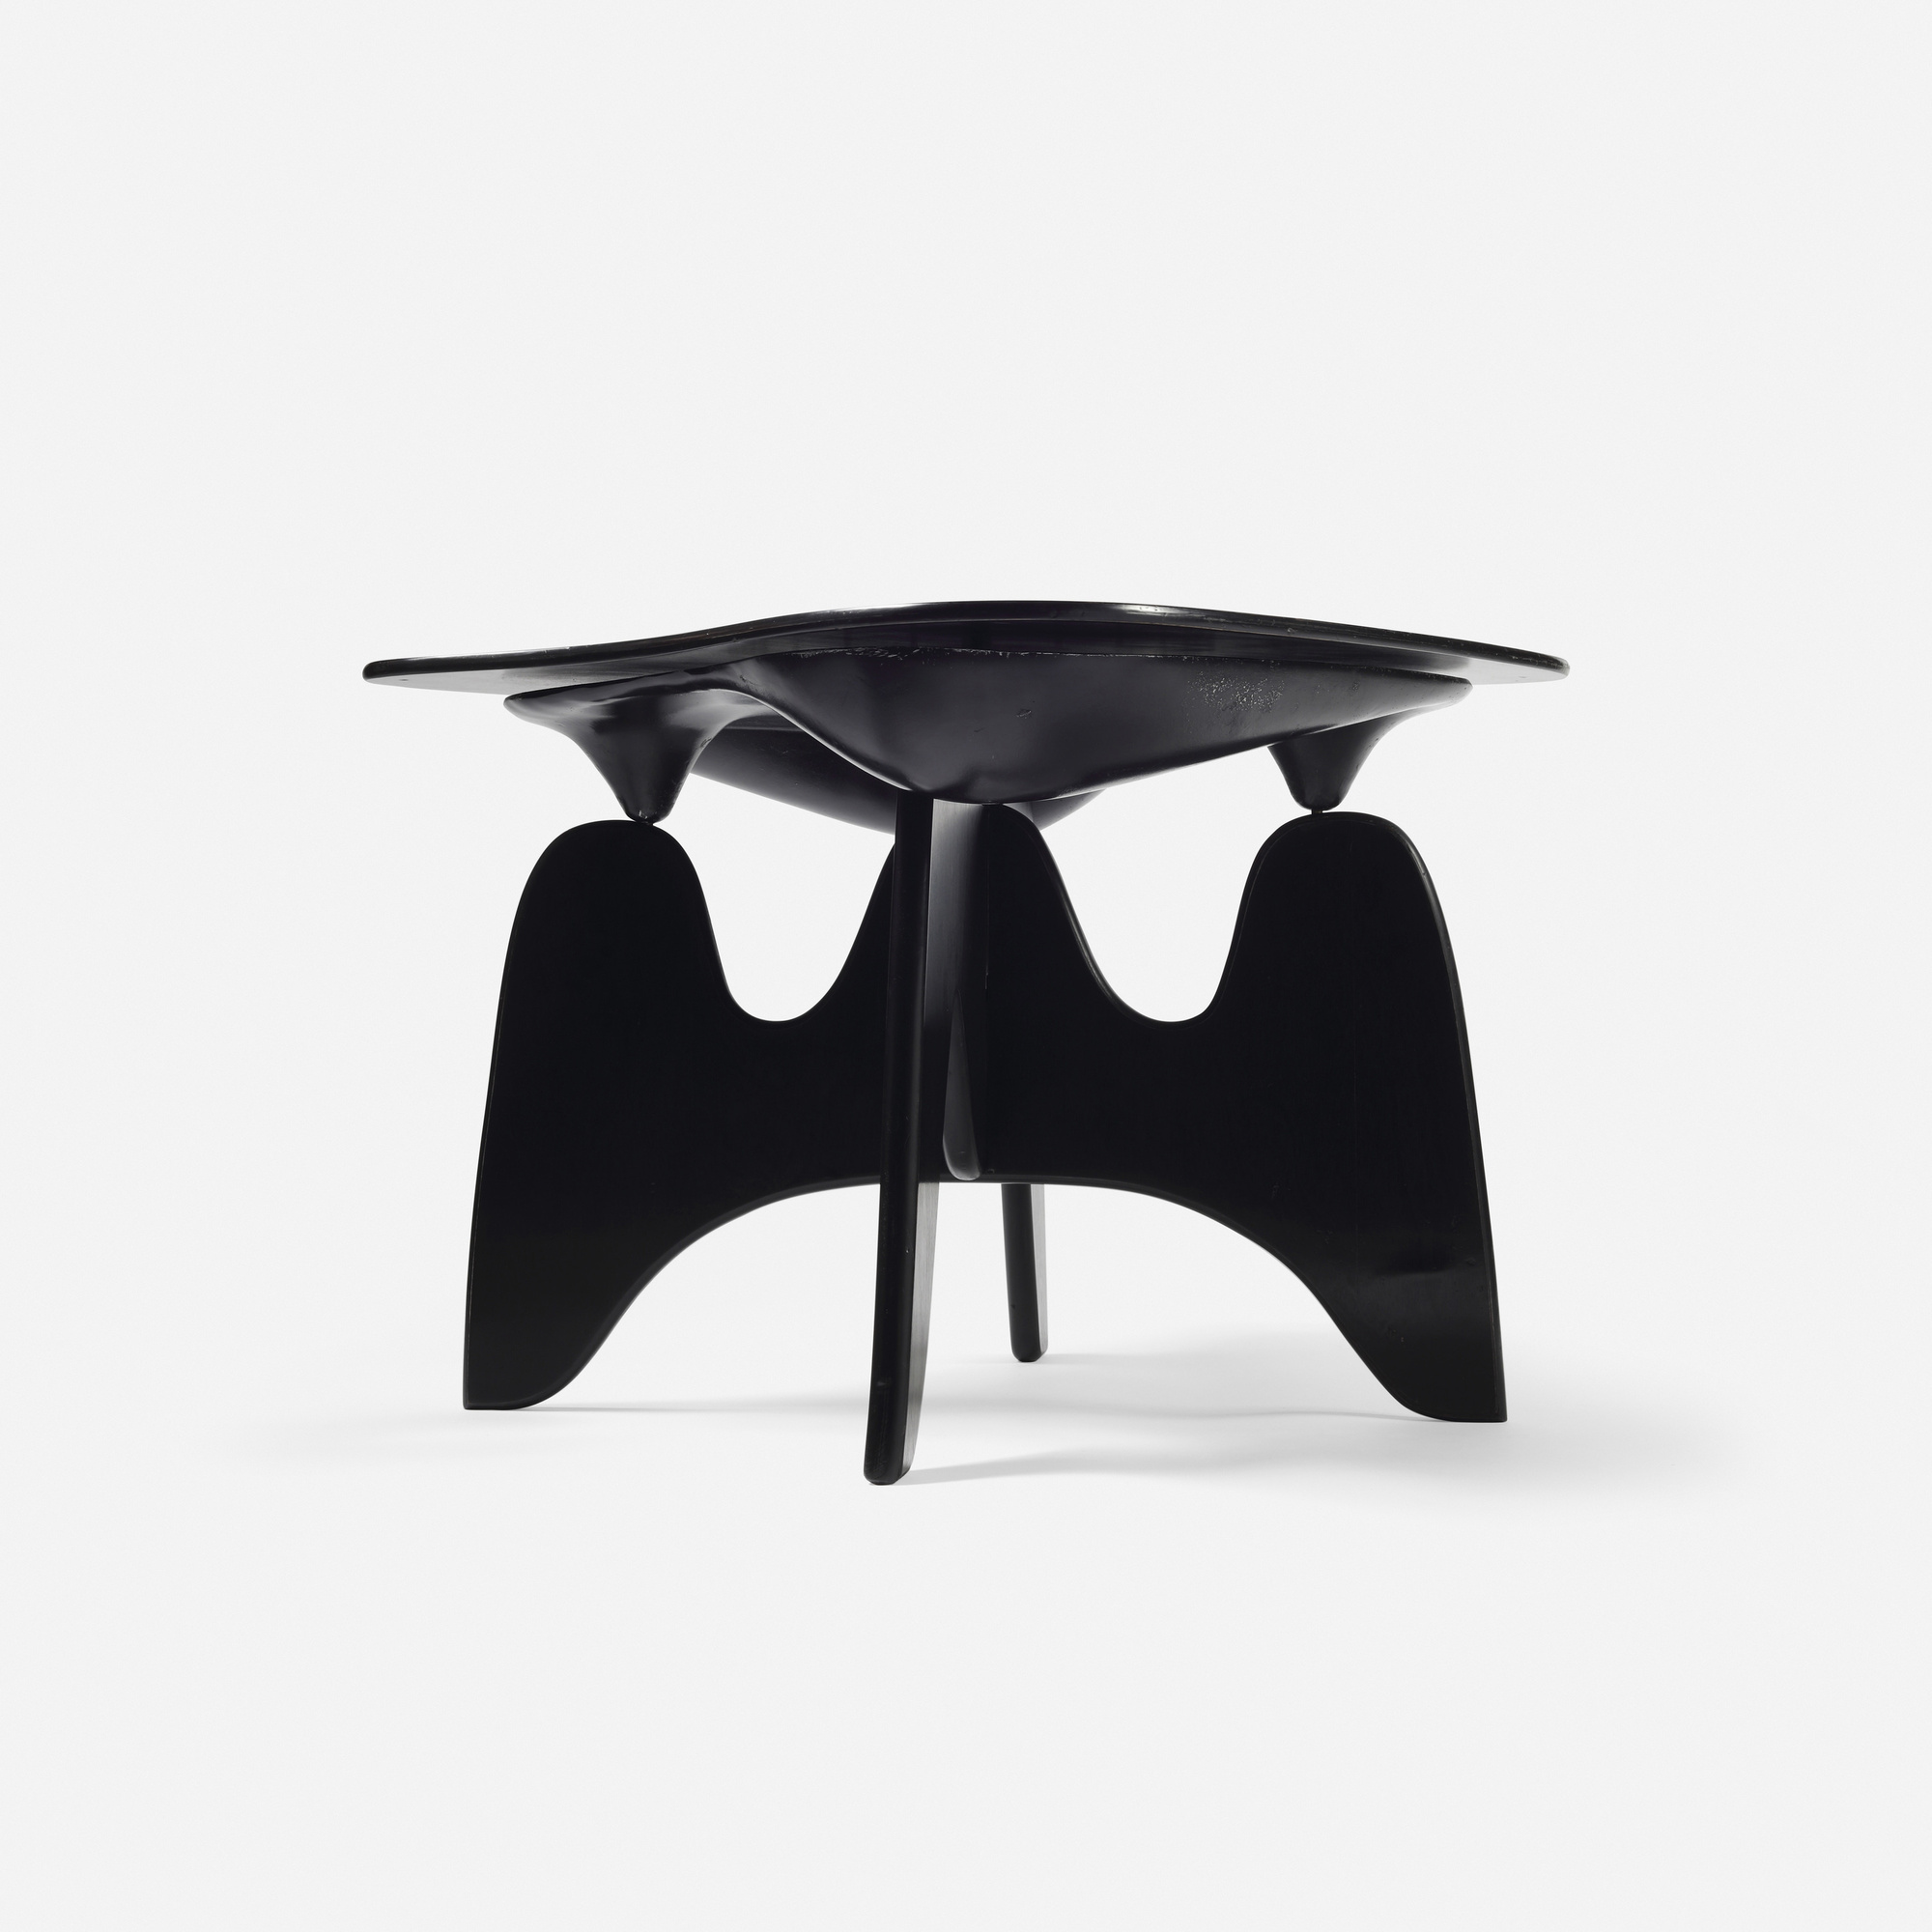 16: Isamu Noguchi / Rare and Important Chess table, model IN-61 (3 of 6)